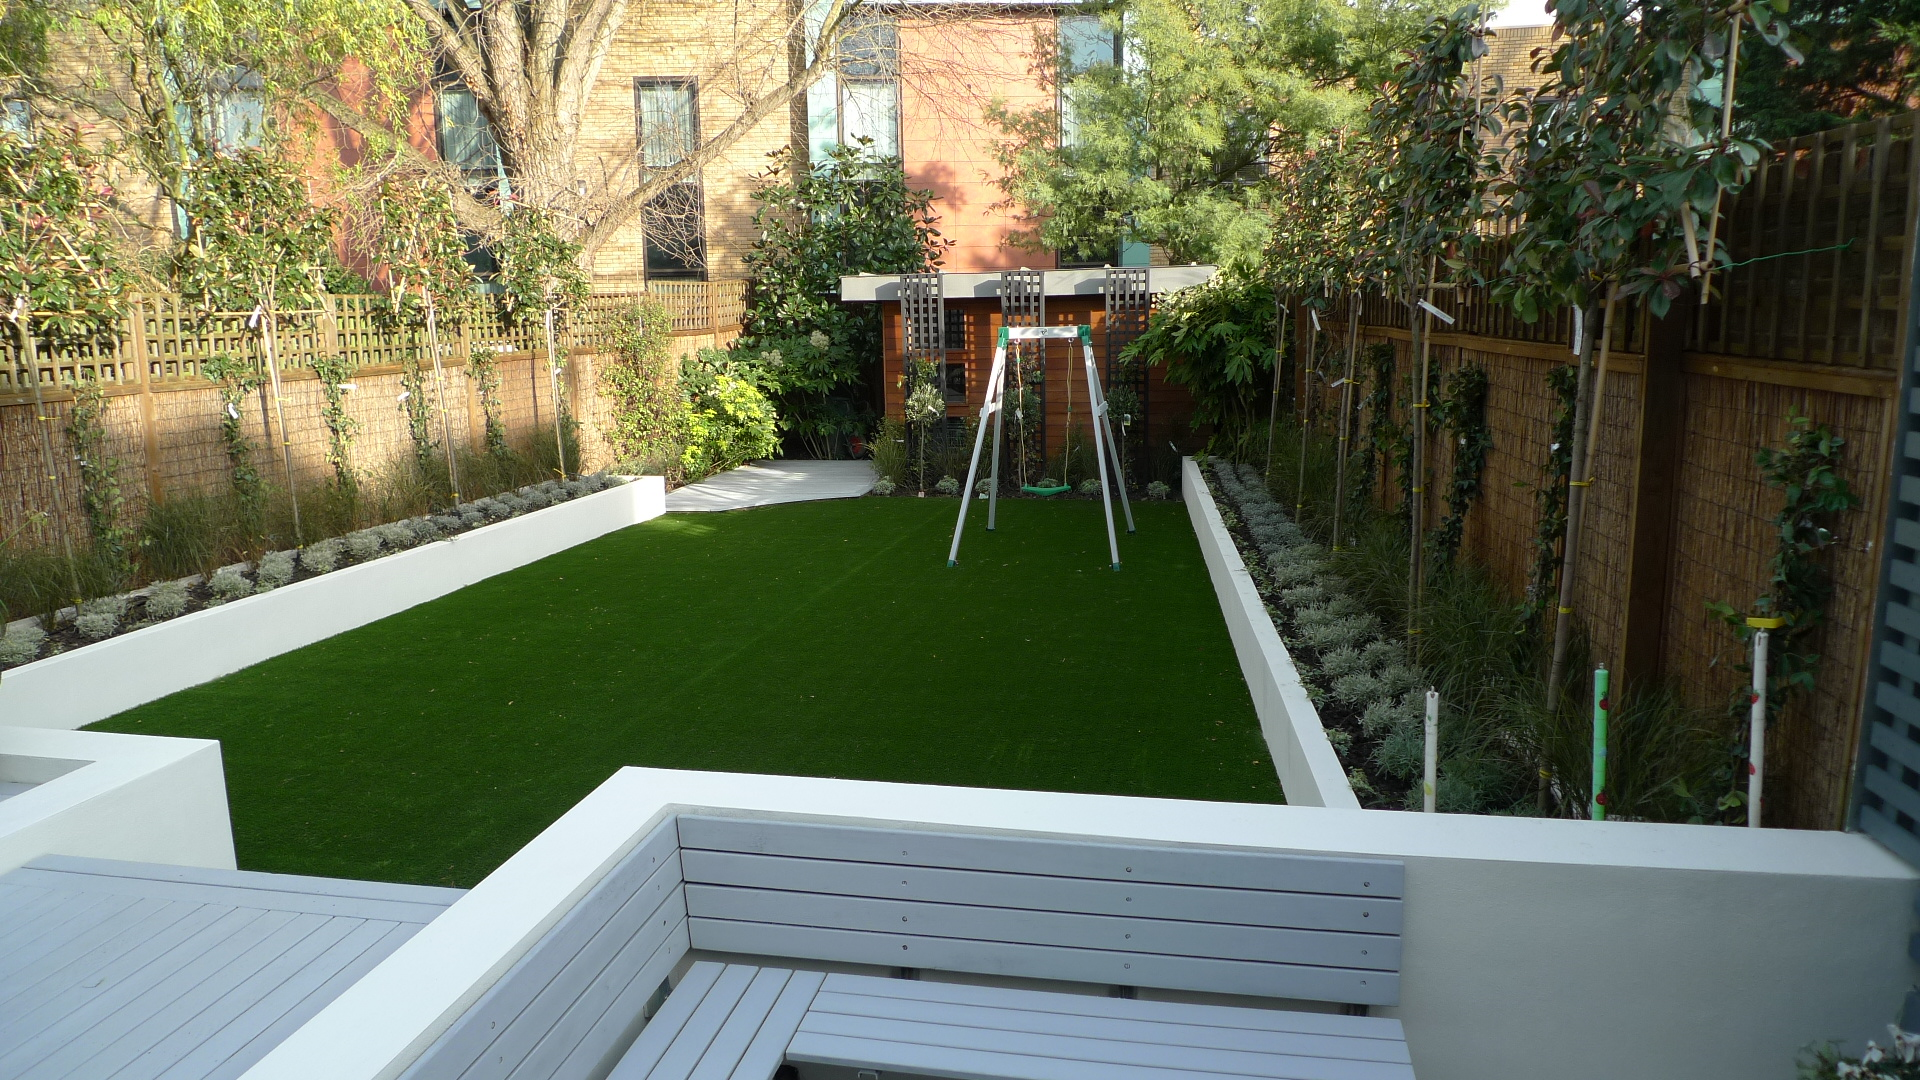 Modern garden design ideas london london garden design for Contemporary garden designs and ideas